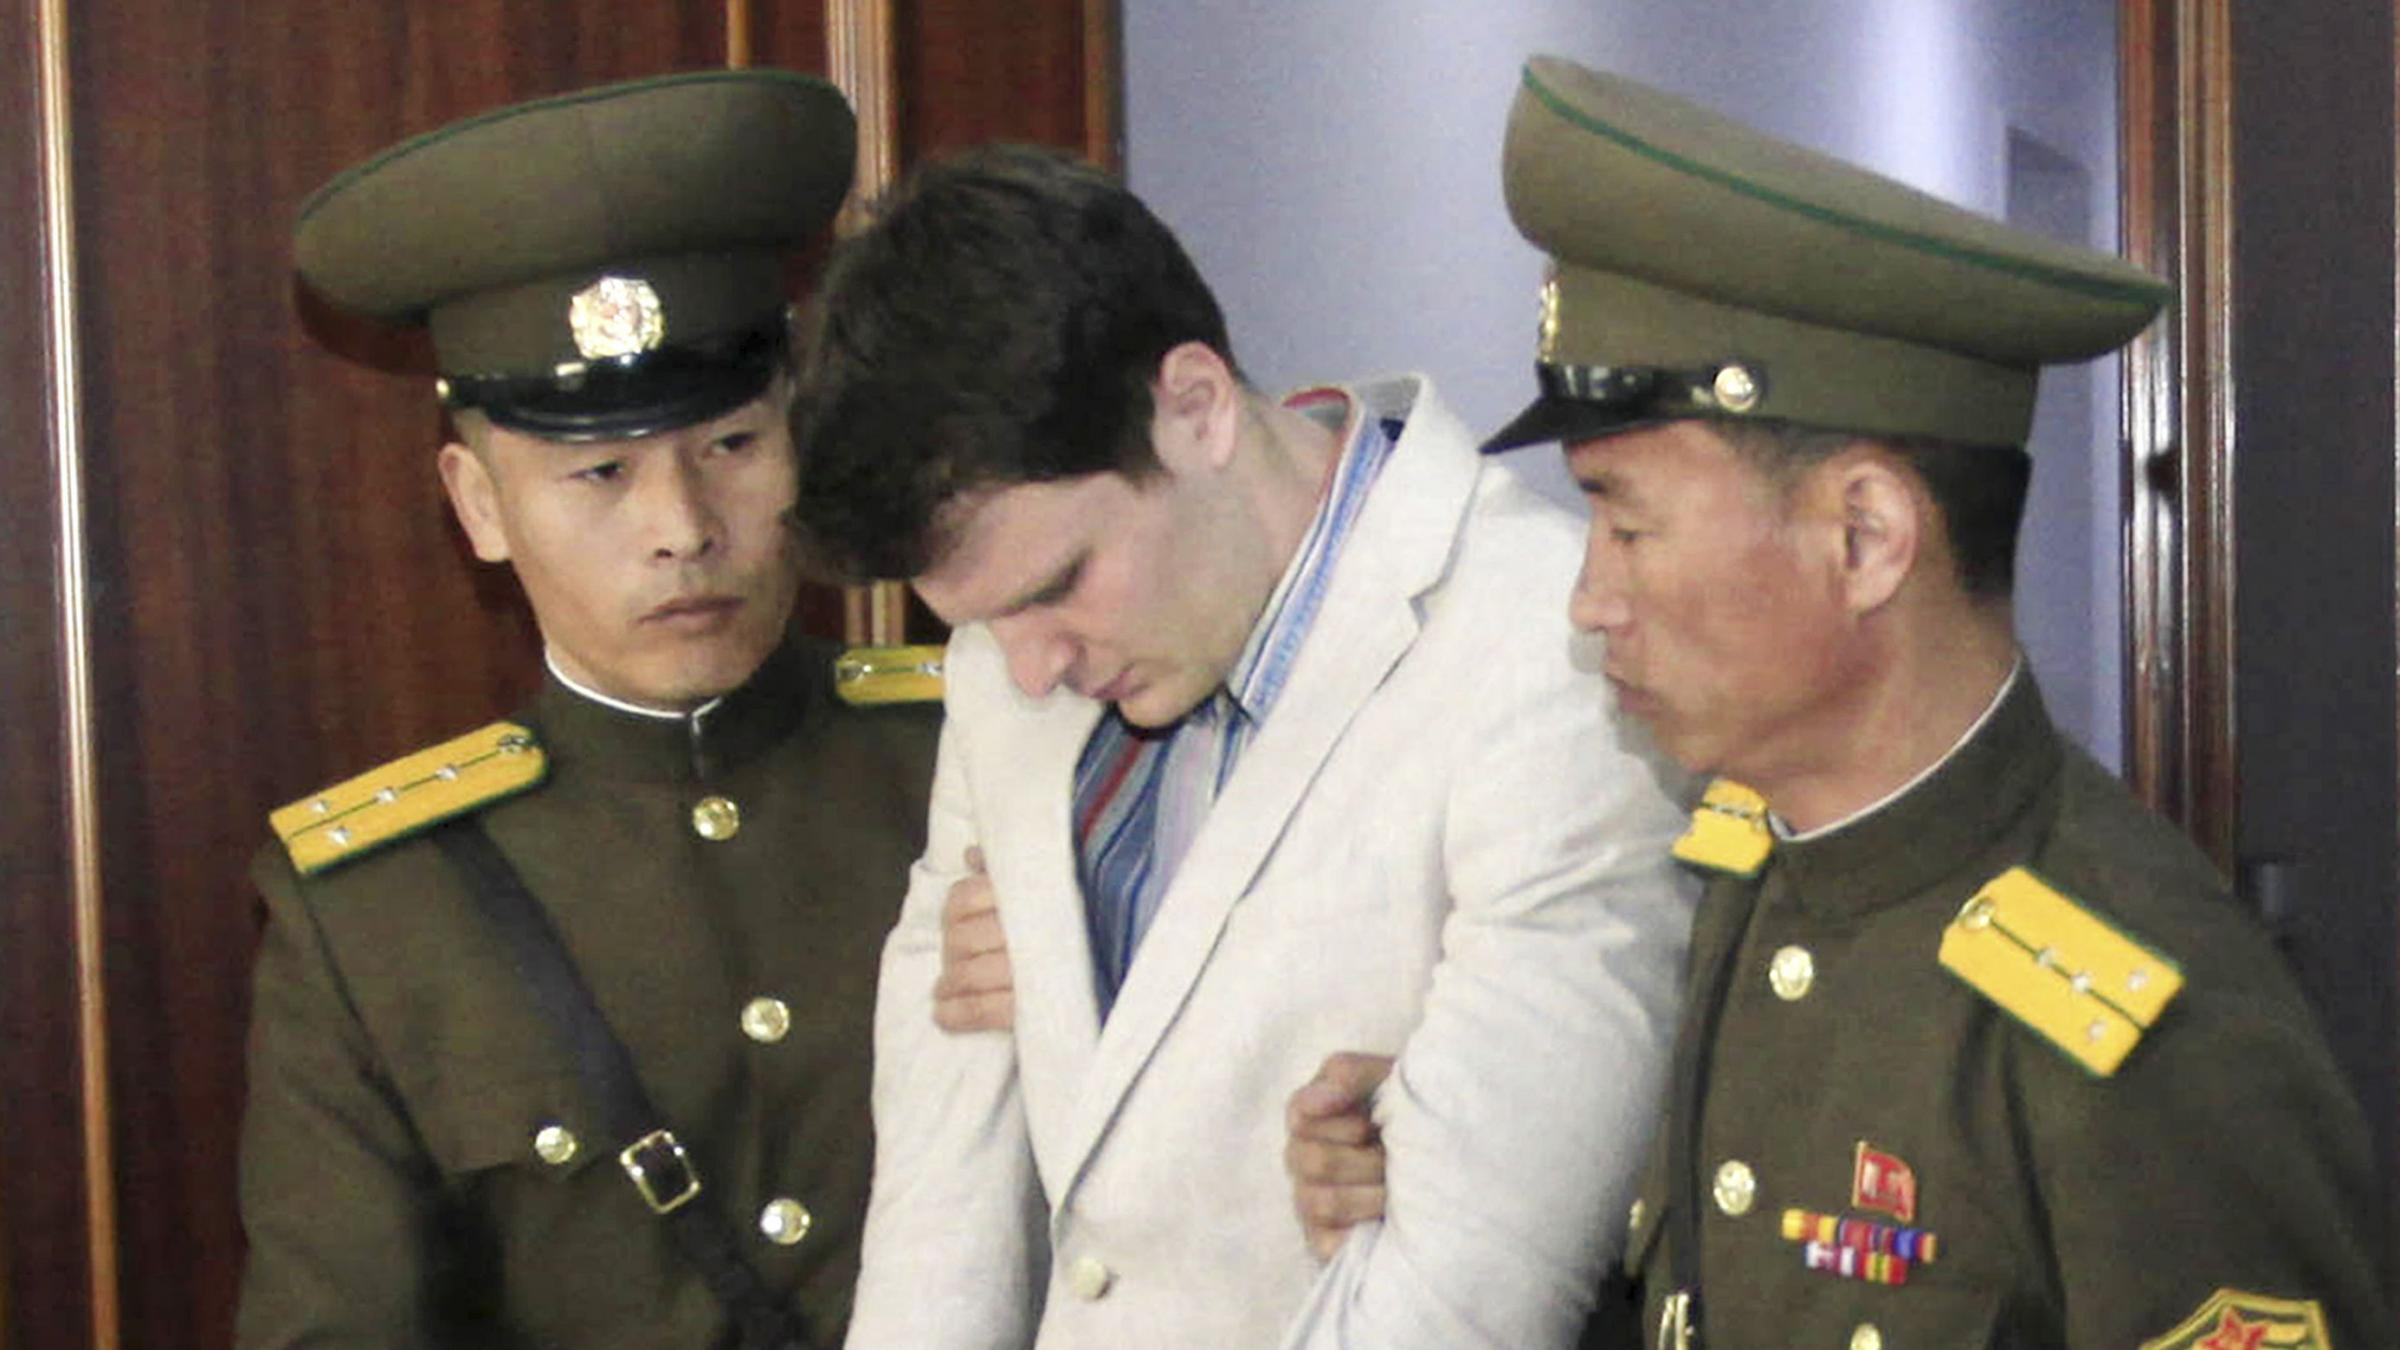 USA student freed by N. Korea has 'severe neurological injury'